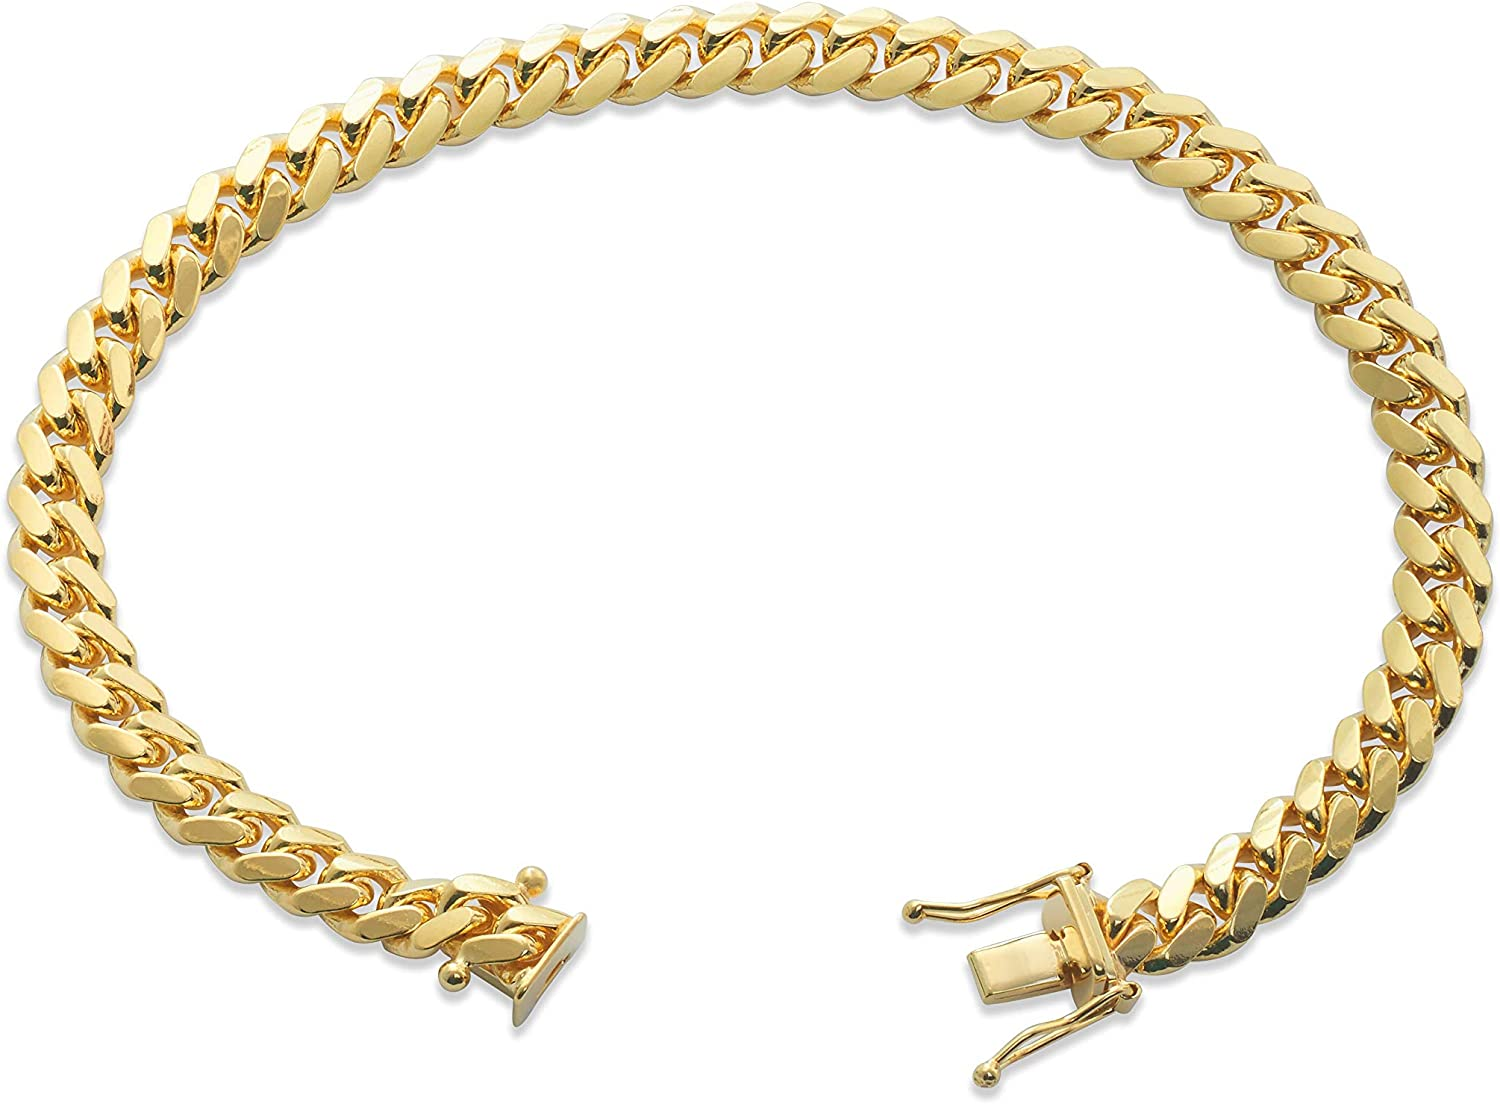 14k Yellow Gold 6mm Solid Miami Cuban Box with Ranking Max 67% OFF TOP16 7